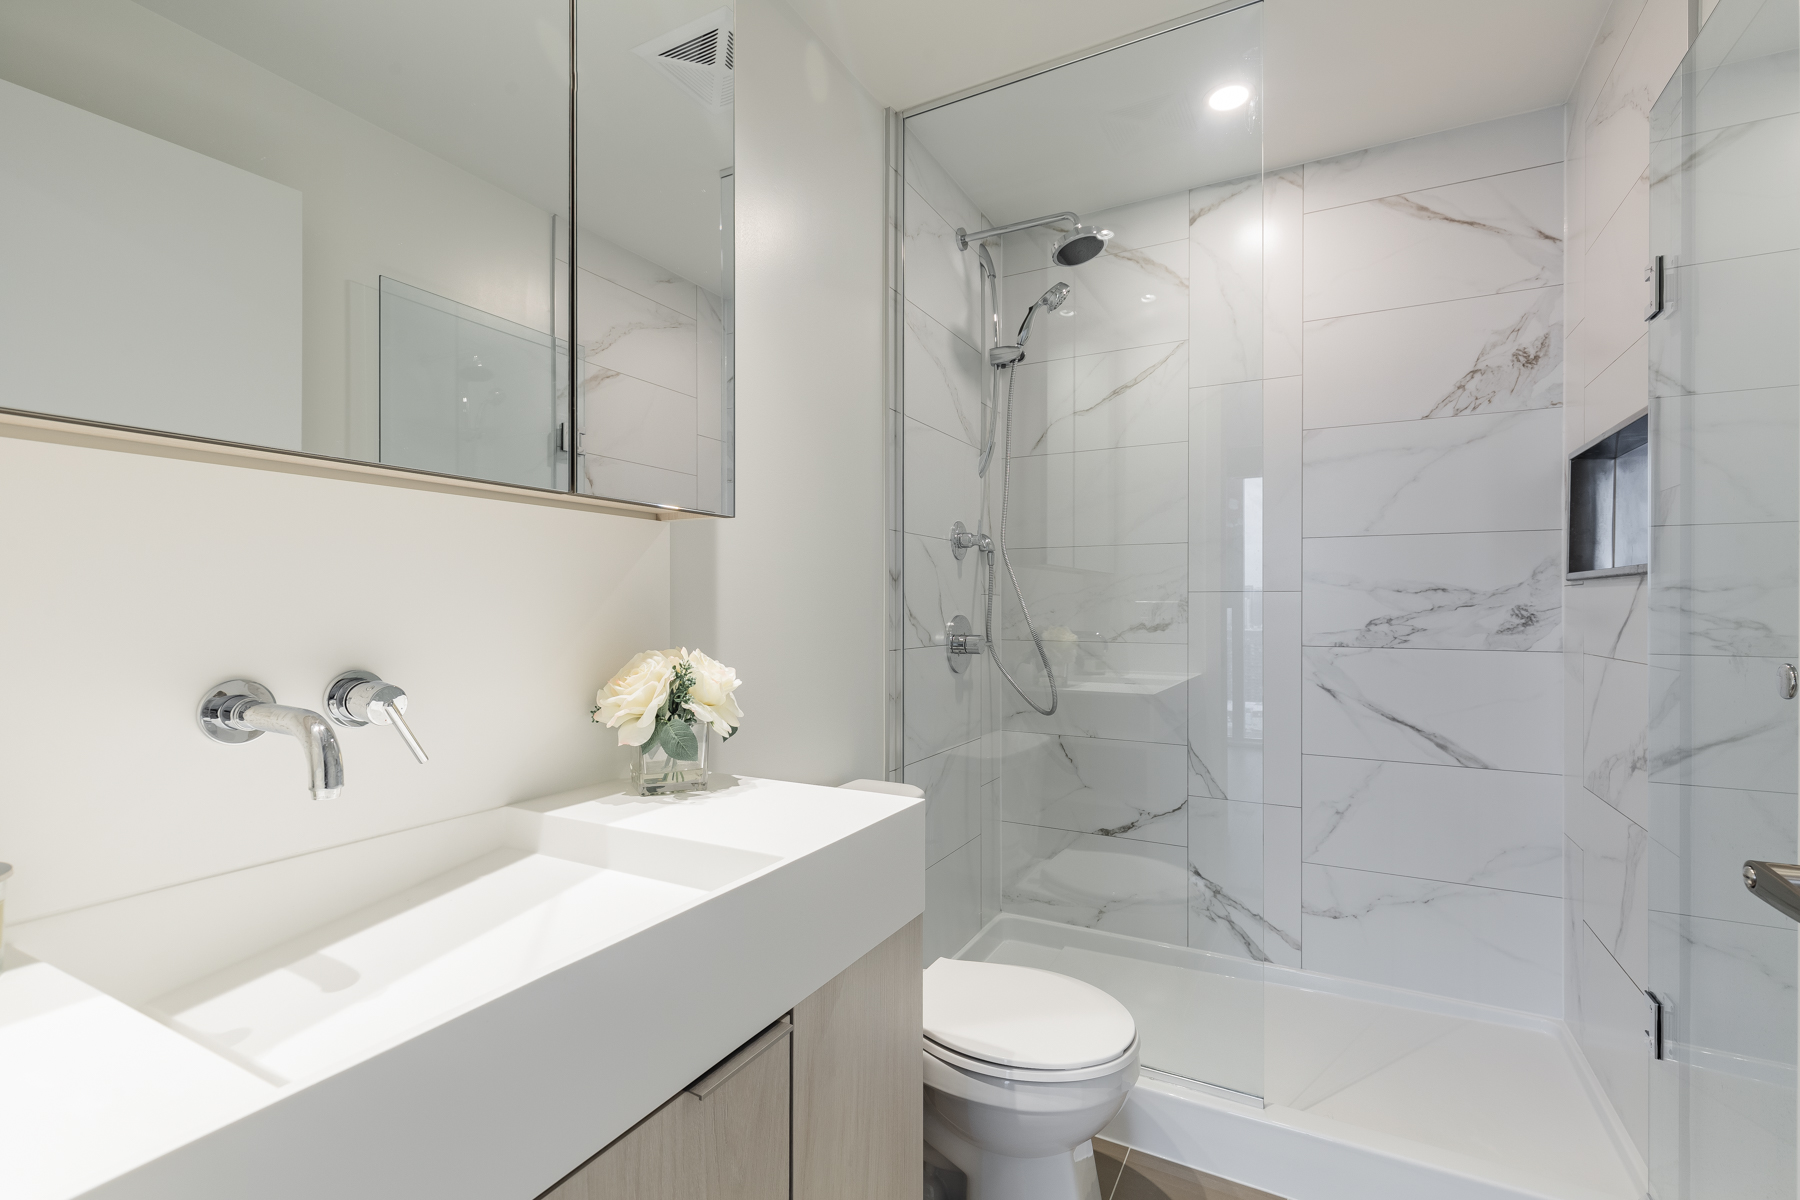 Beautiful ensuite bath with glass shower, vanity and marble tiles.